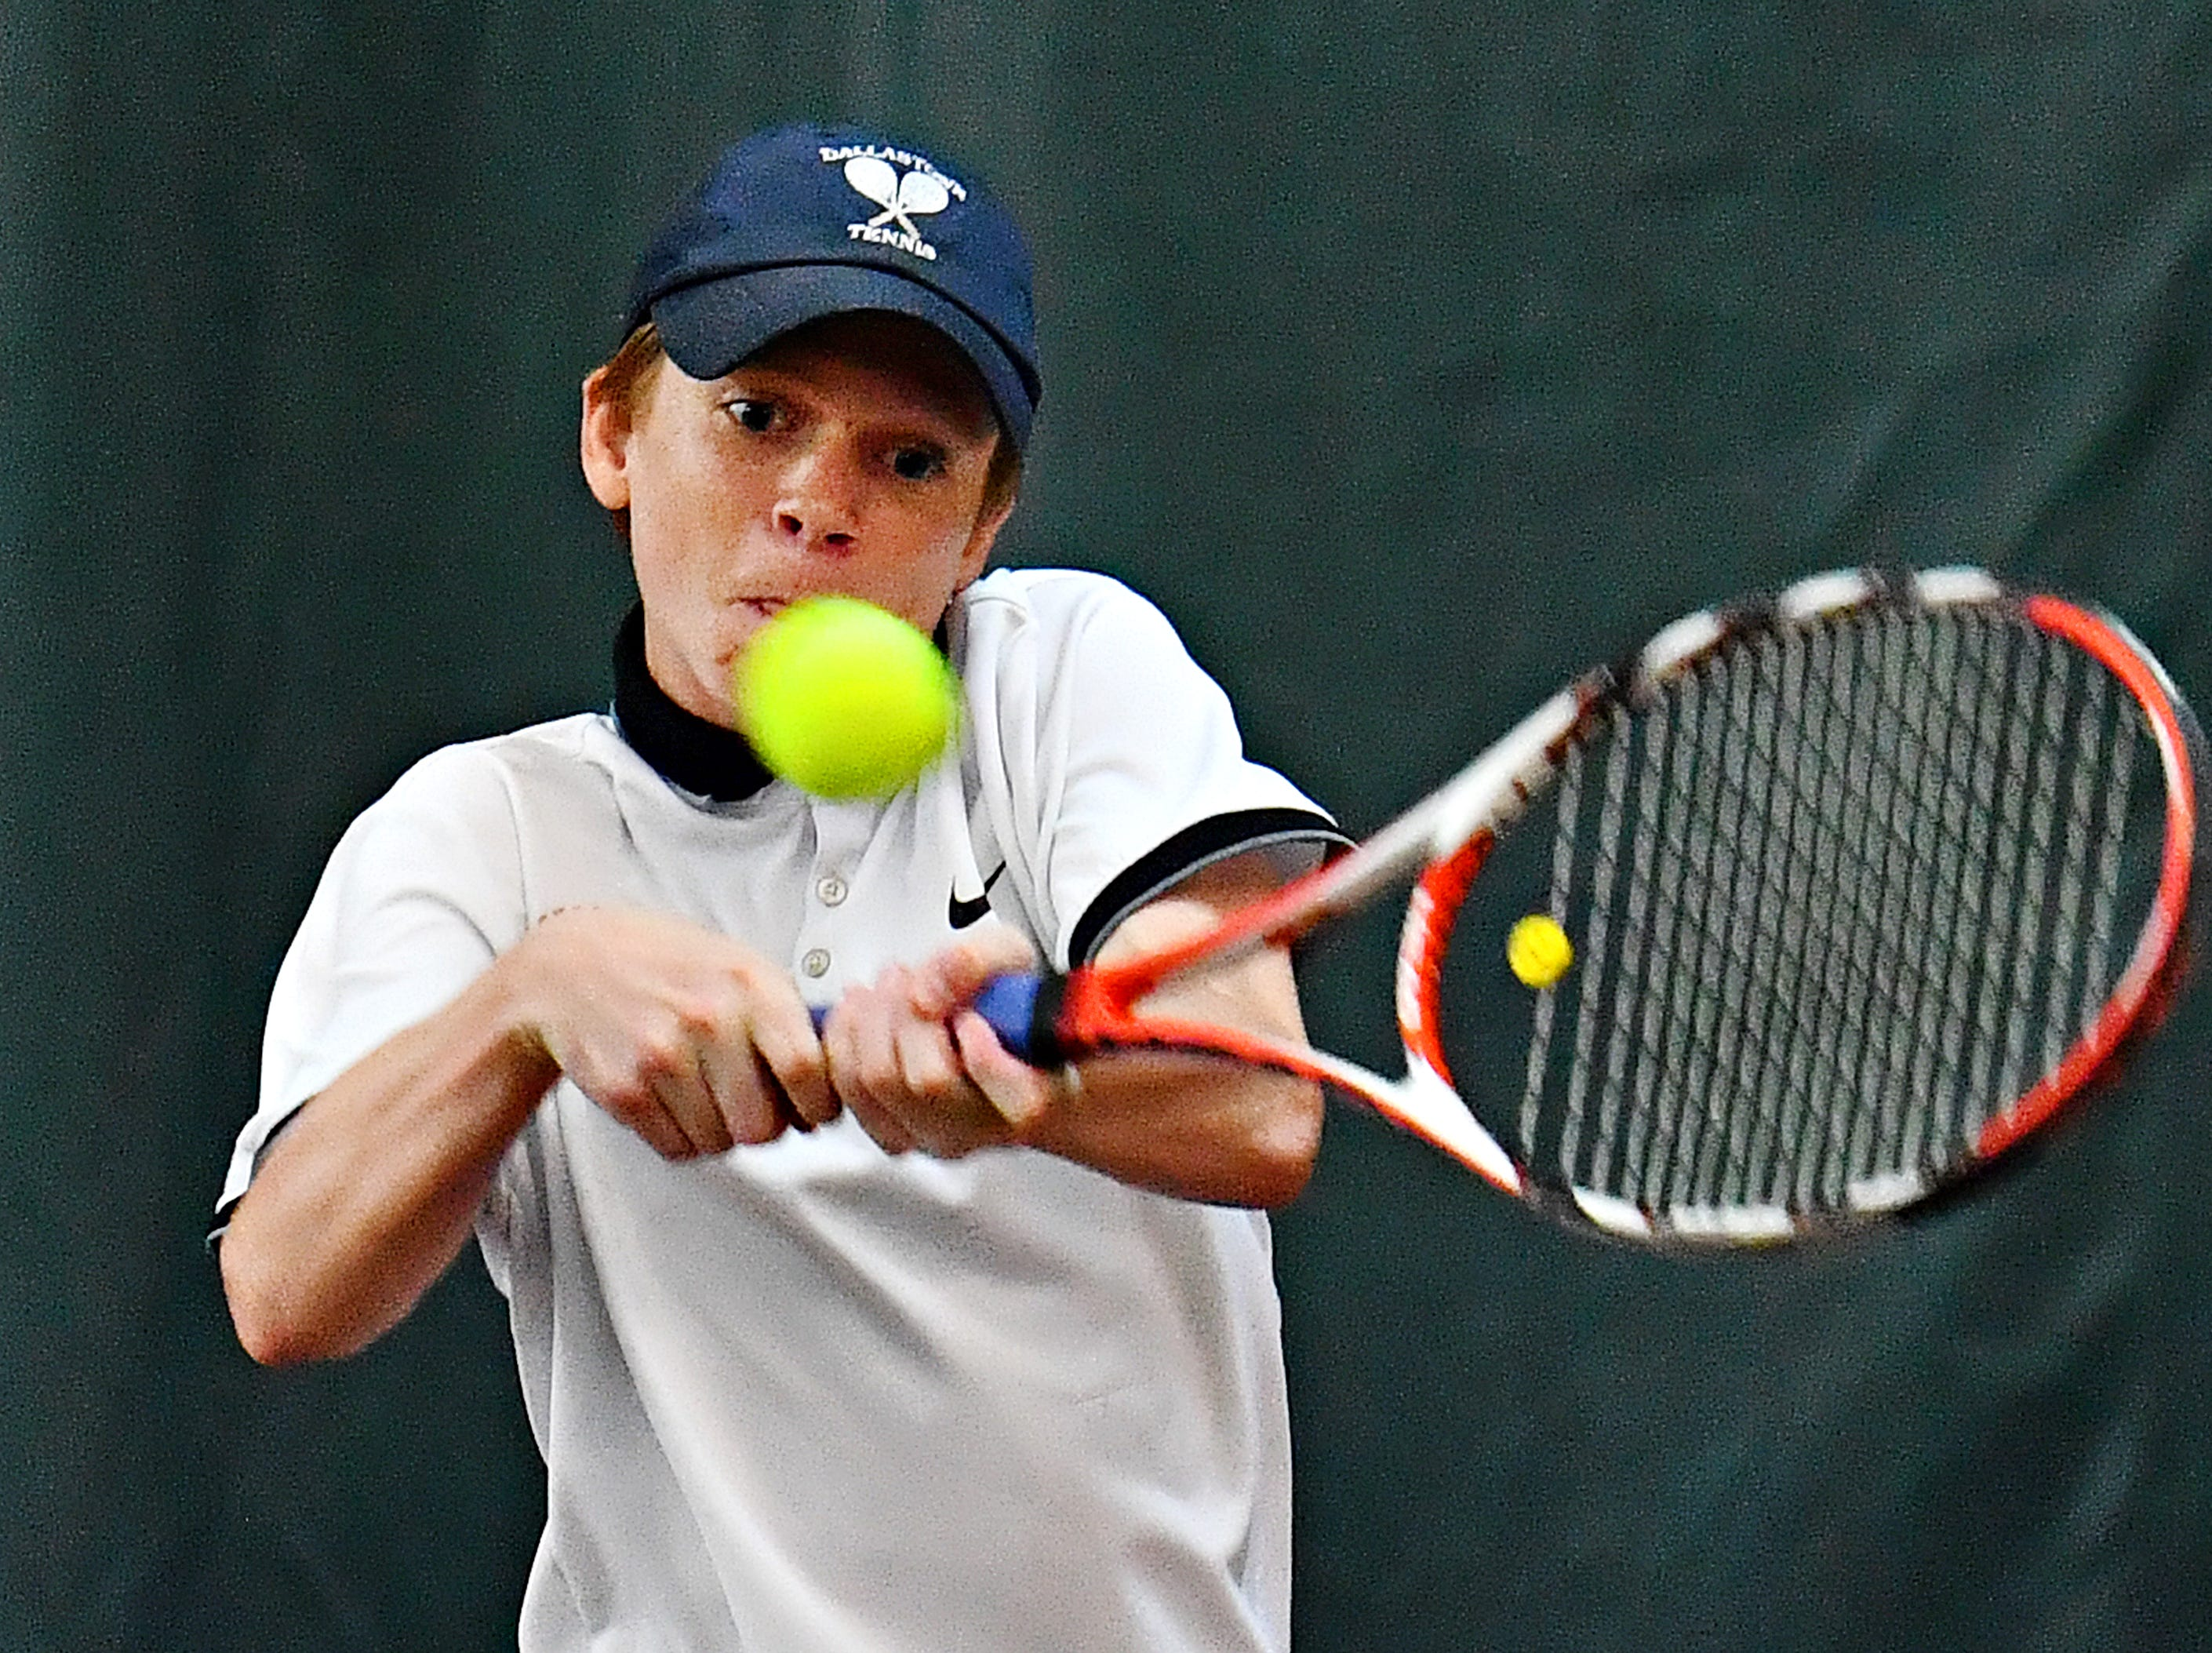 Dallastown's Noah May returns the ball to Hershey during District III, Class 3-A boys' tennis team championship doubles action at Hershey Raquet Club in Hershey, Thursday, May 9, 2019. Hershey would win the match as well as the title. Dawn J. Sagert photo